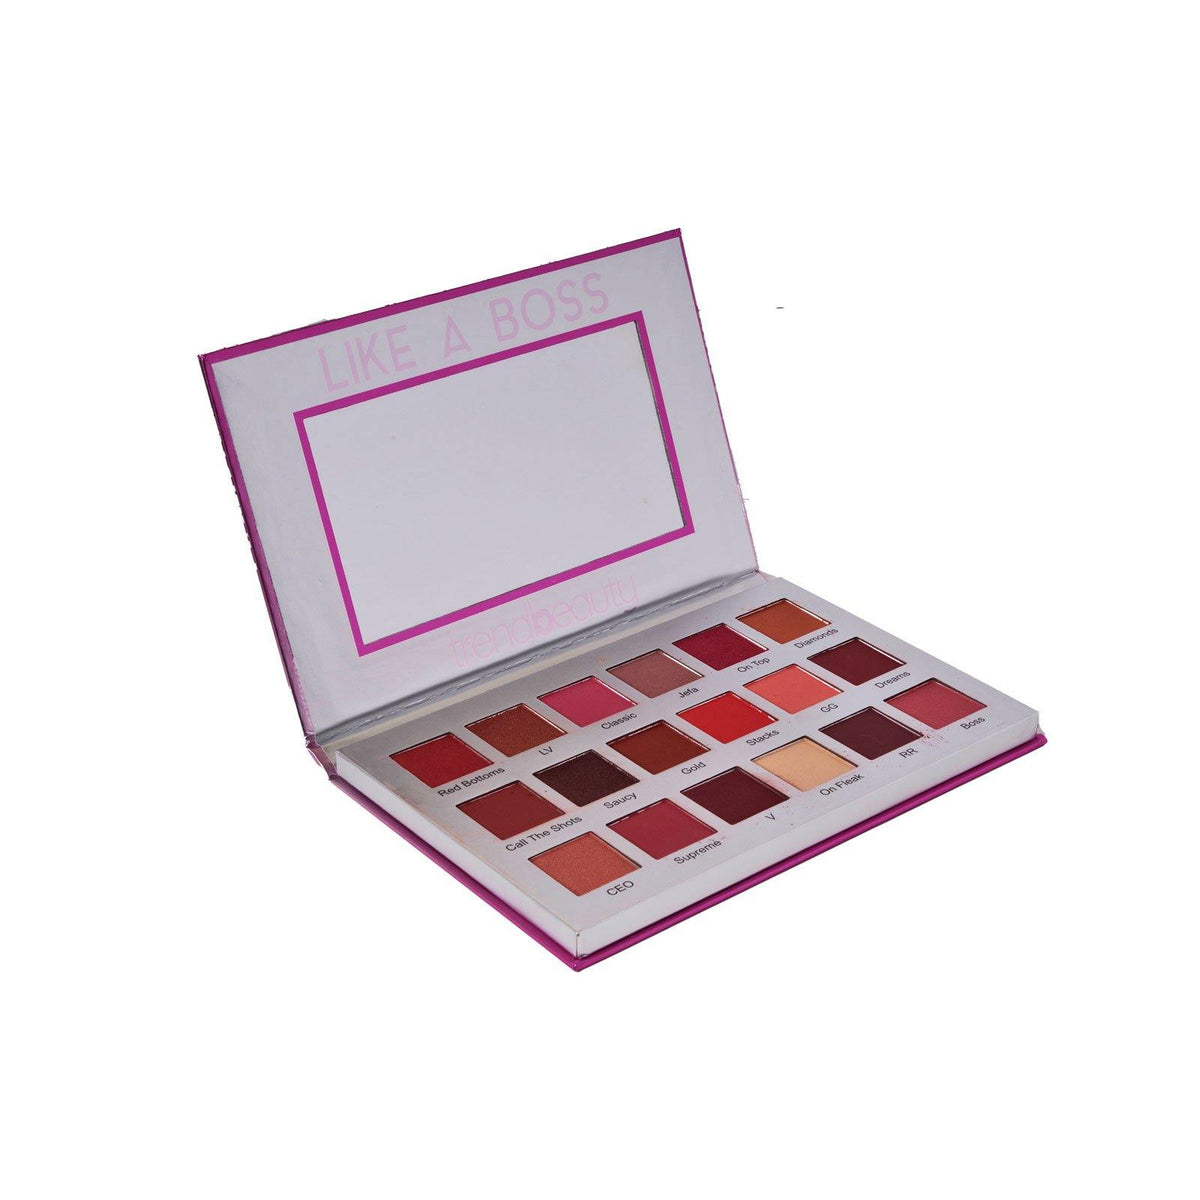 Trend Beauty, Te18 , Like A Boss Eyeshadow, An eyeshadow palette with 18 different tones. Cruelty free. (12/cs)